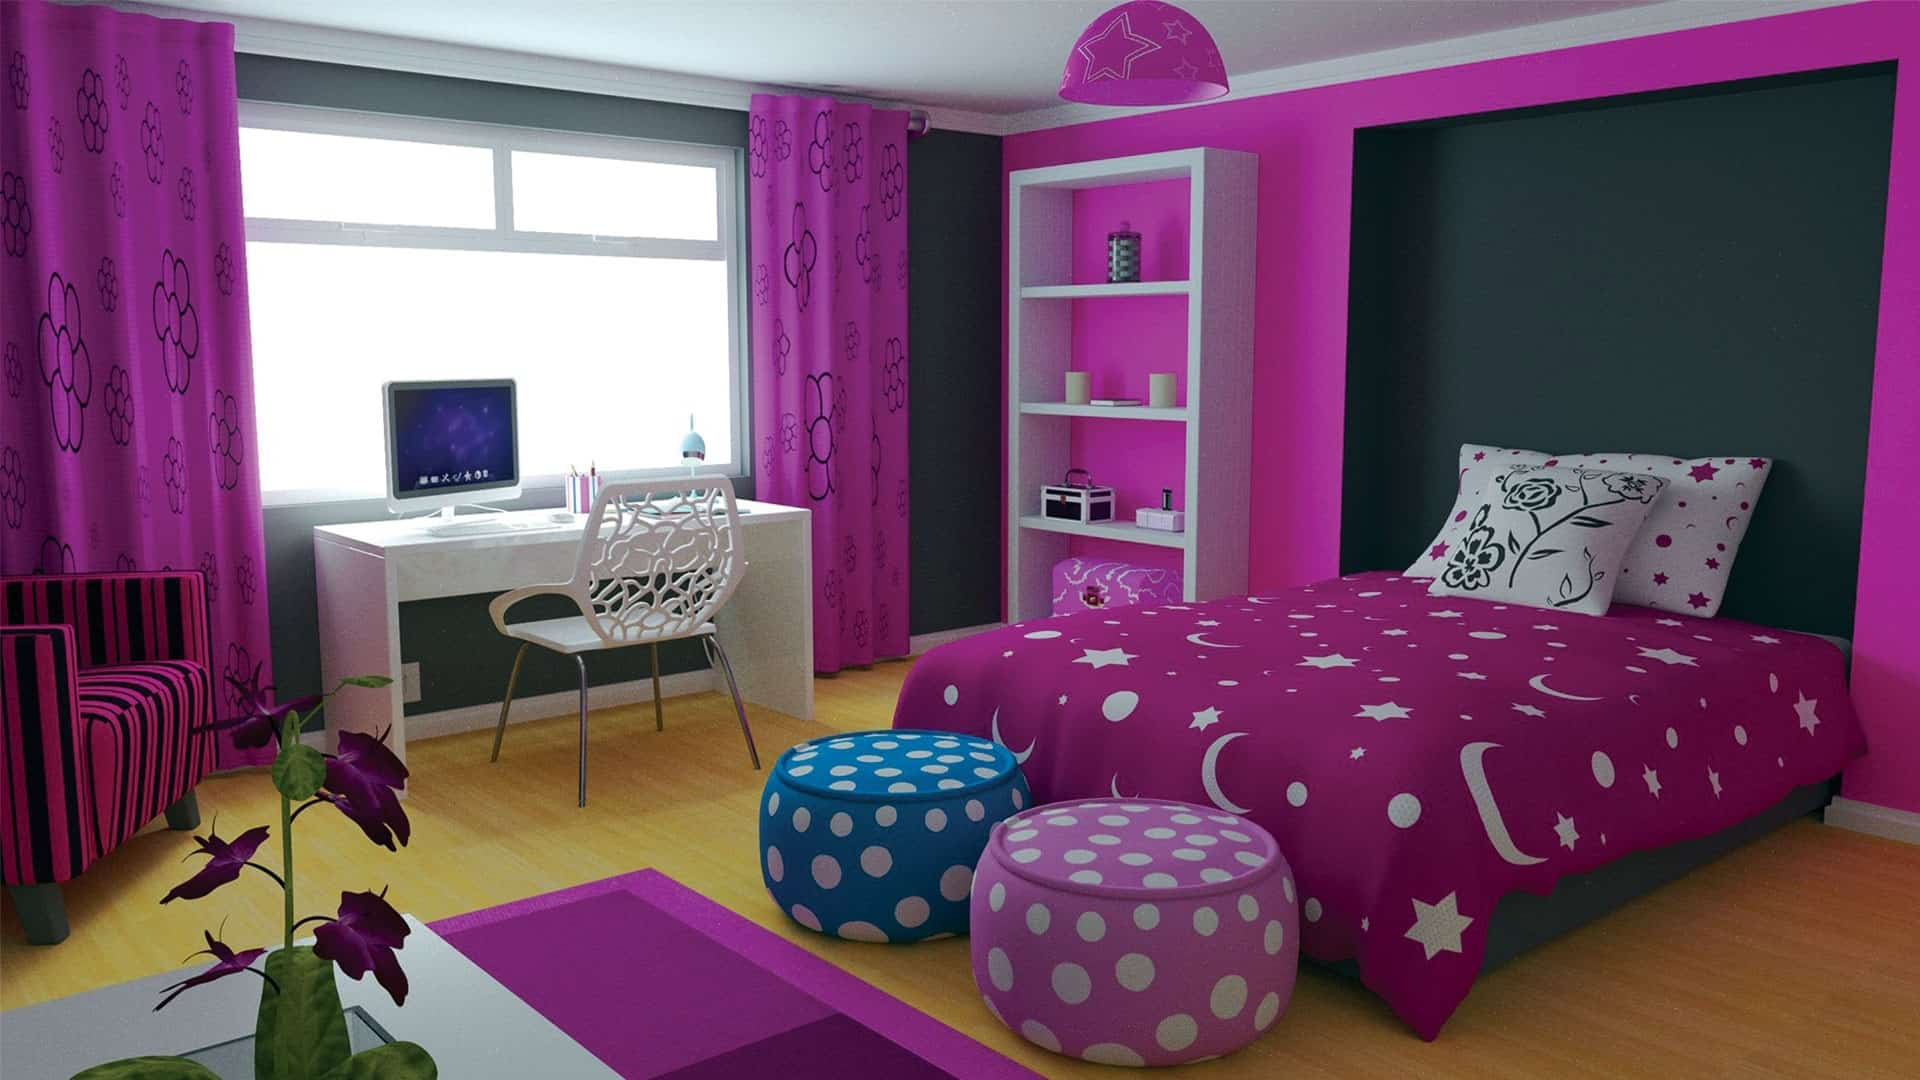 Bedroom ideas for teenage girls light pink - Purple Teen Room Girls Room Bedroom Ideas Teen